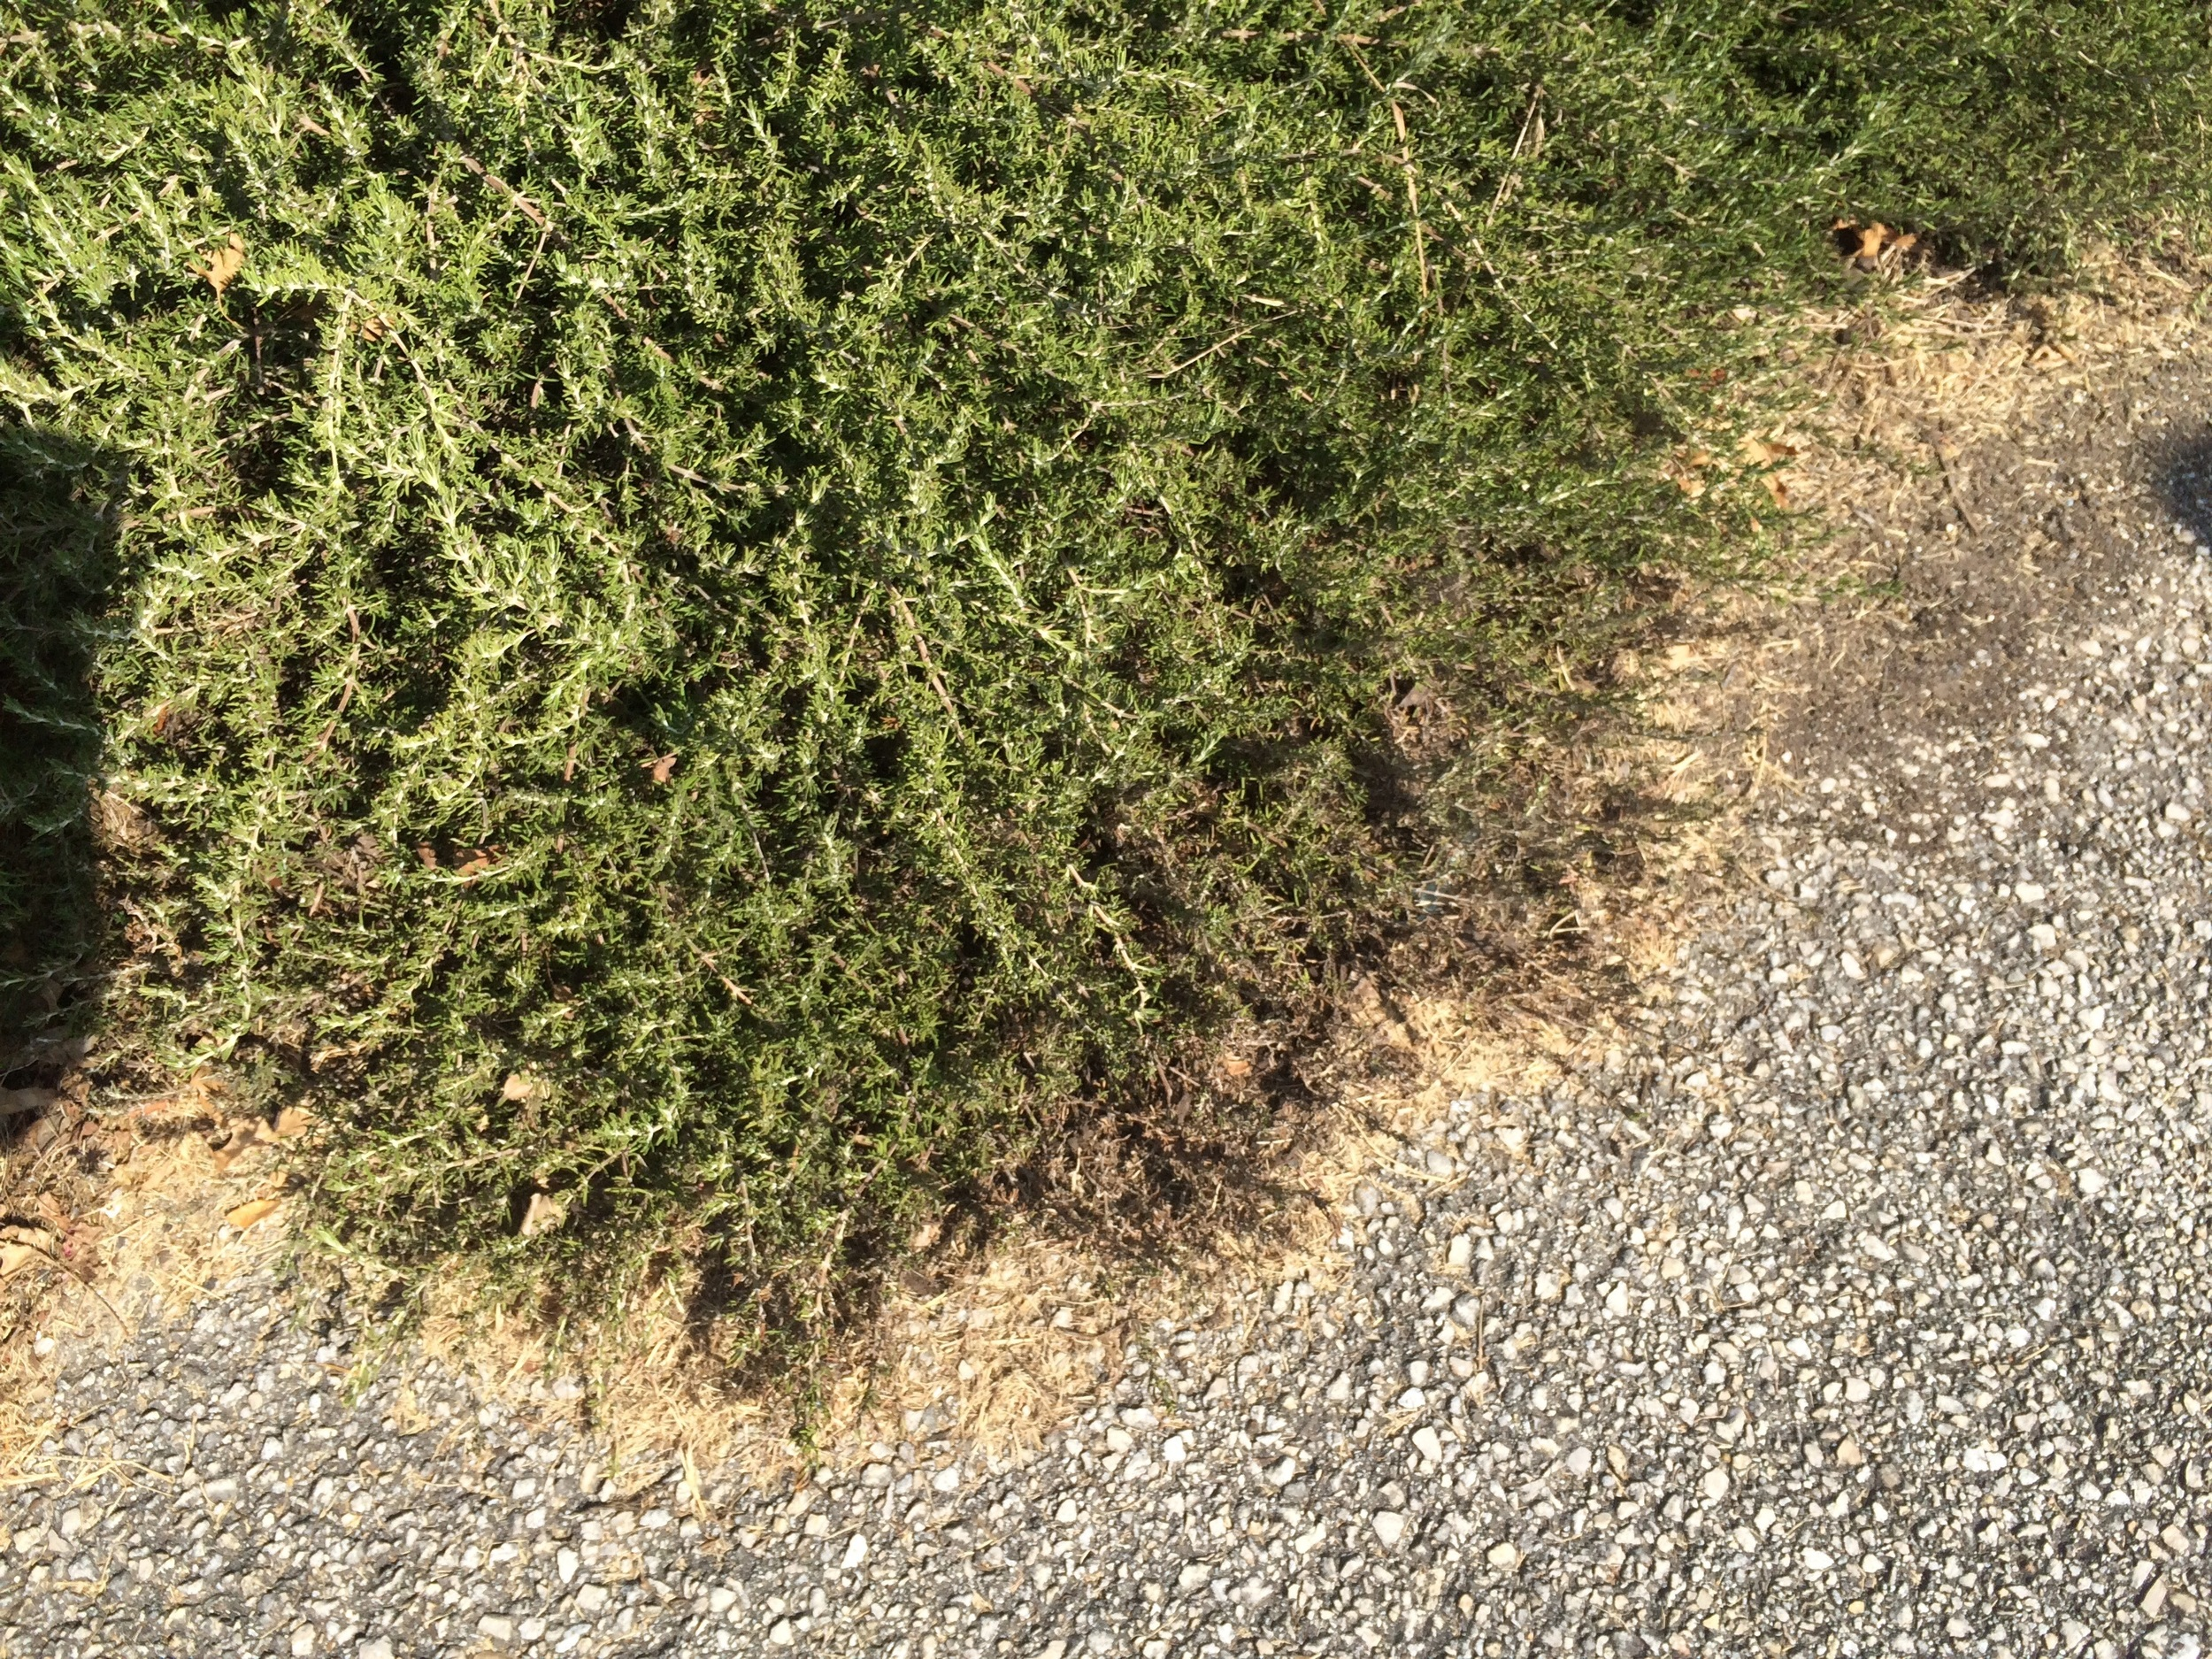 """""""Before"""" photo of a trailing rosemary growing along the street. We pruned it to remove some dead branches and to control its size because it was growing too far out into the street. See how the dead leaves are hanging out over the pavement?"""